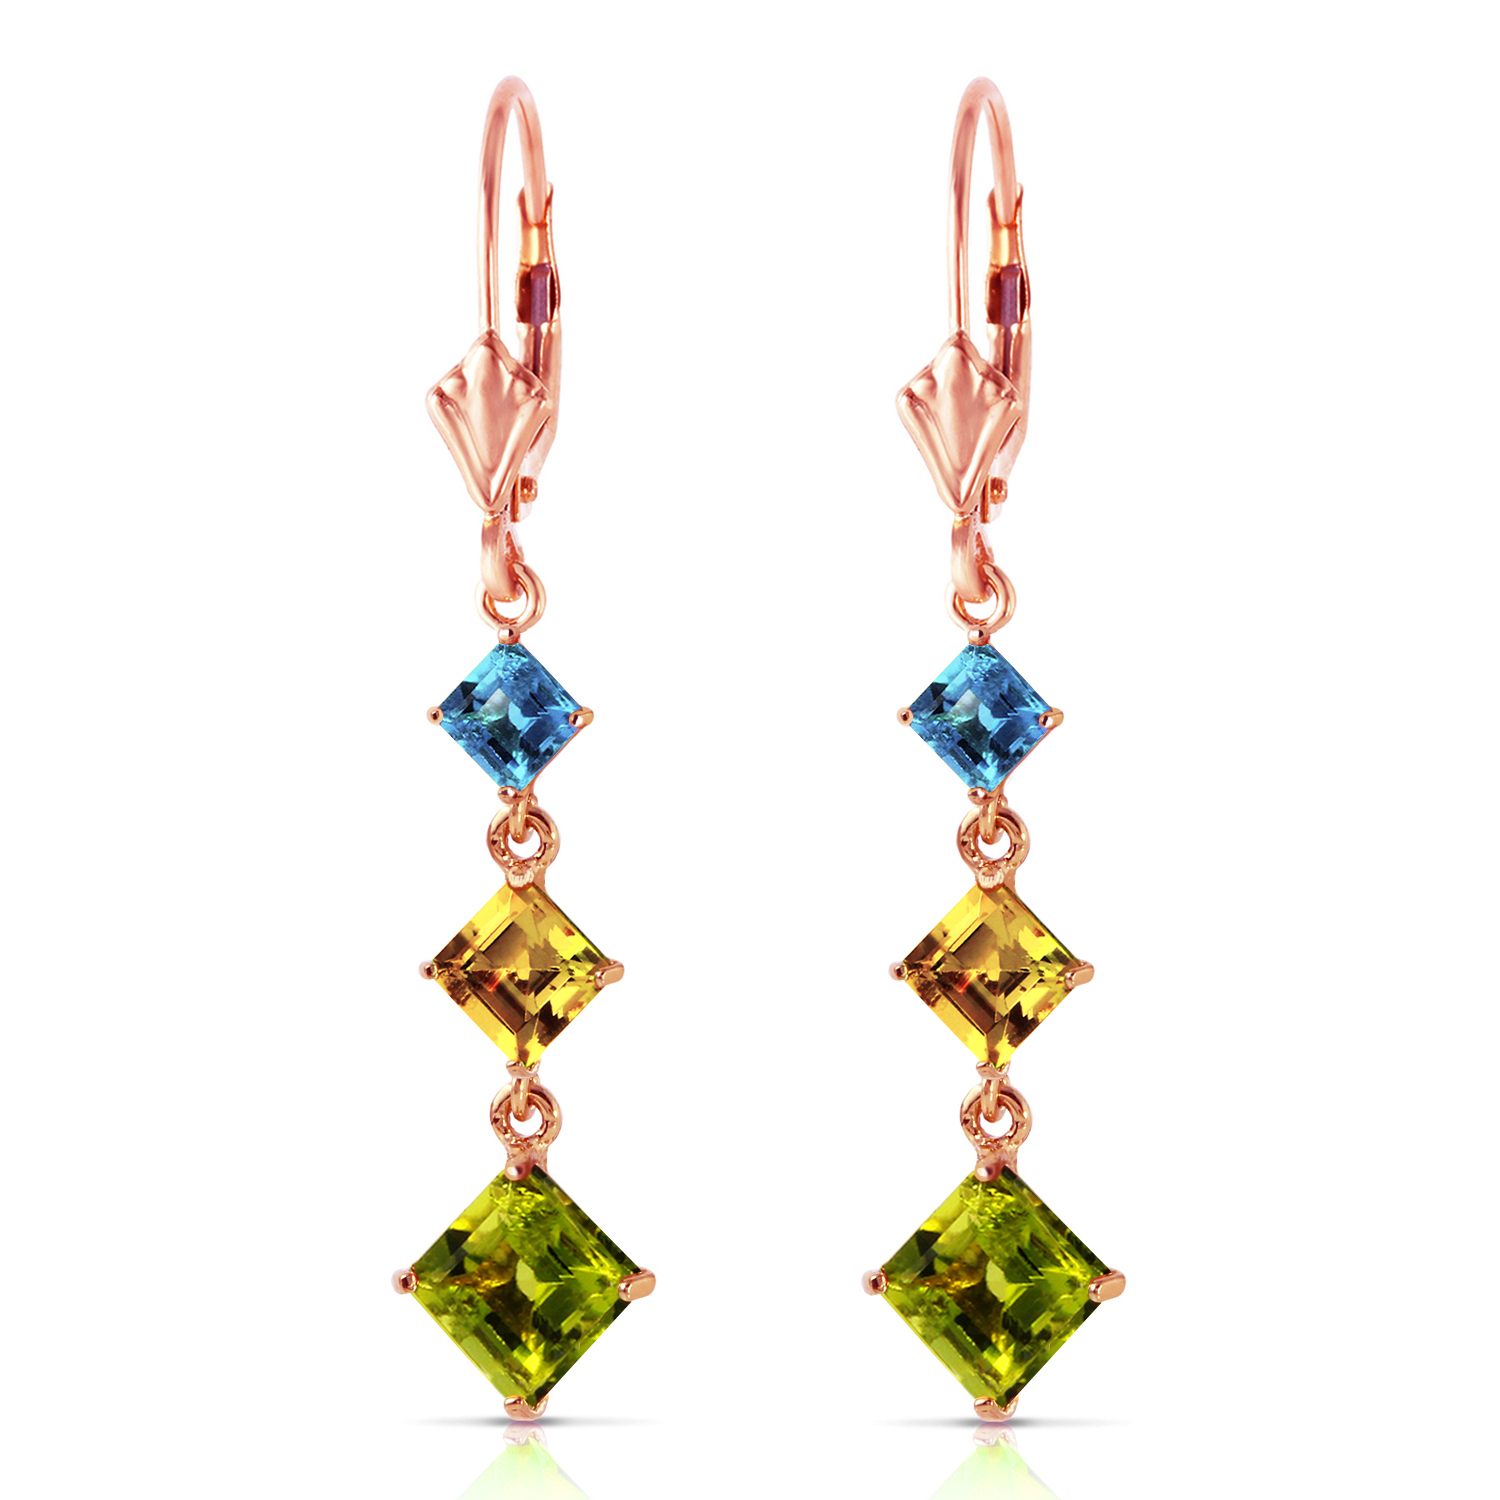 Primary image for 4.8 Carat 14K Solid Rose Gold Chandelier Earrings Blue Topaz, Citrine Peridot